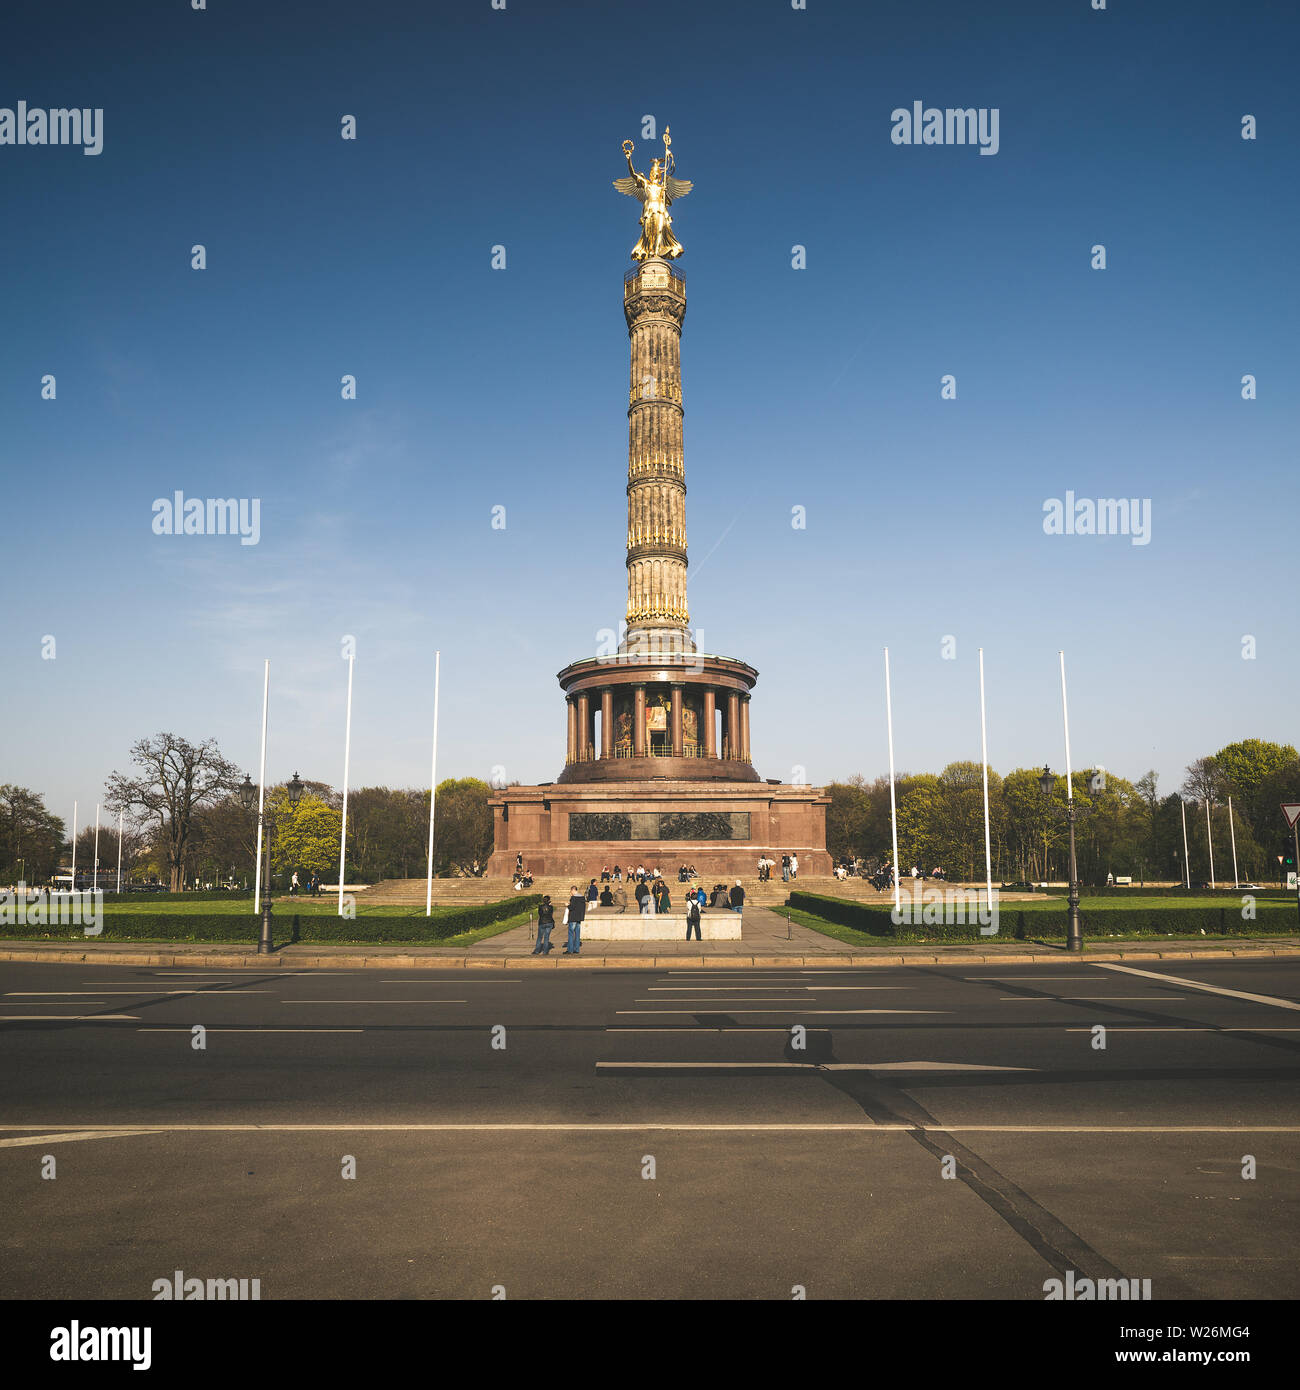 Victory monument (Siegessauele) in Berlin - Stock Image